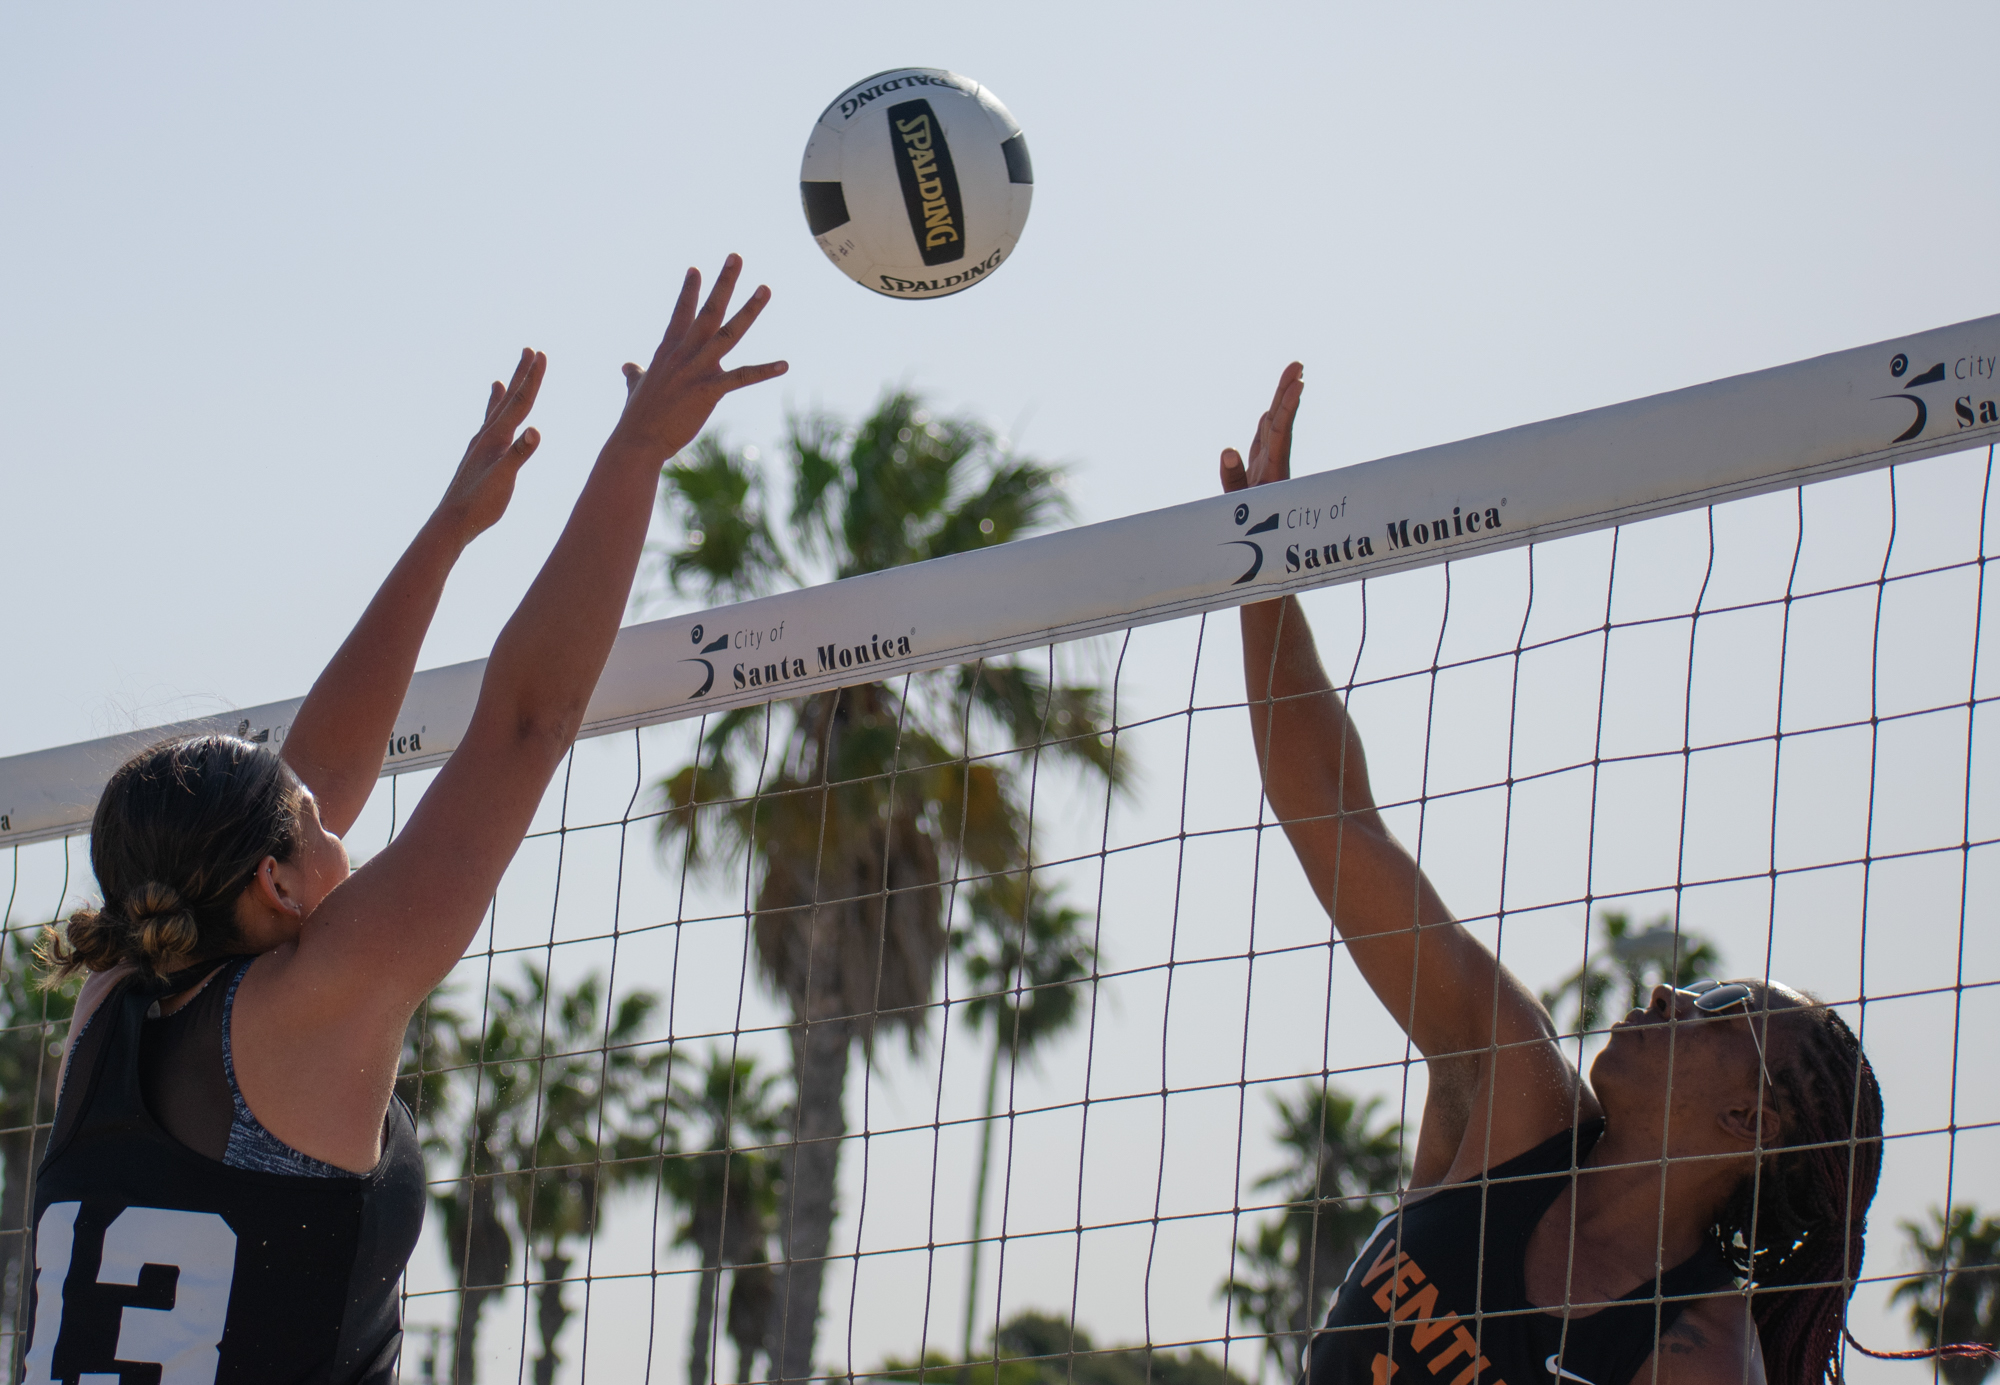 Santa Monica College Corsair Ada Nadzakova (#13) prepares to defend against Armonee Hunter (#10) of the Ventura College Pirates during a conference game of beach volleyball in court two at the Santa Monica beach on Friday, April 13, 2018 in Santa Monica, California. It was a 4-1 loss for the Corsairs, bringing their total to 2-11 for the season. (Ethan Lauren/Corsair Photo)